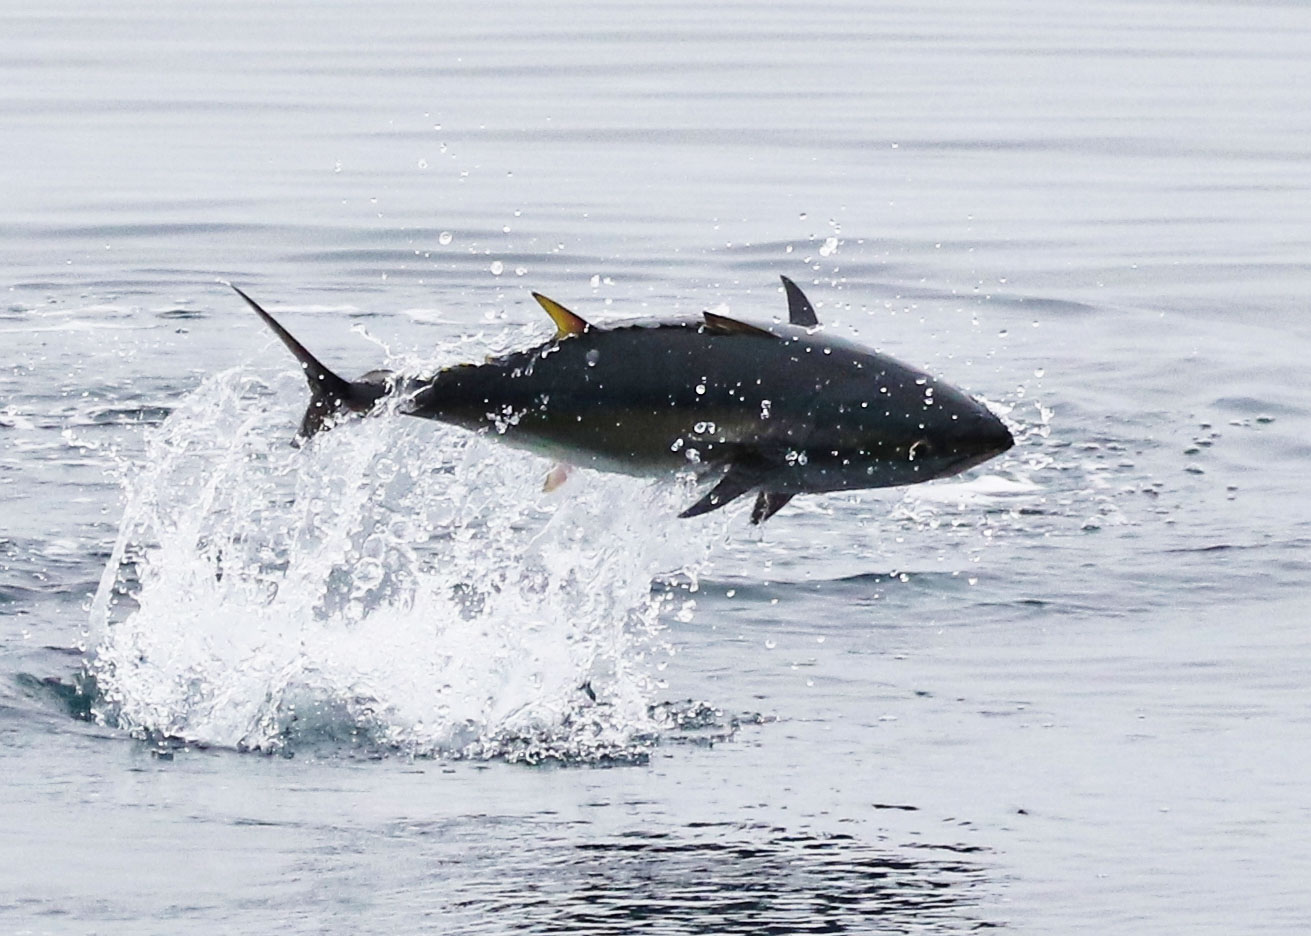 A tuna leaps out of the ocean